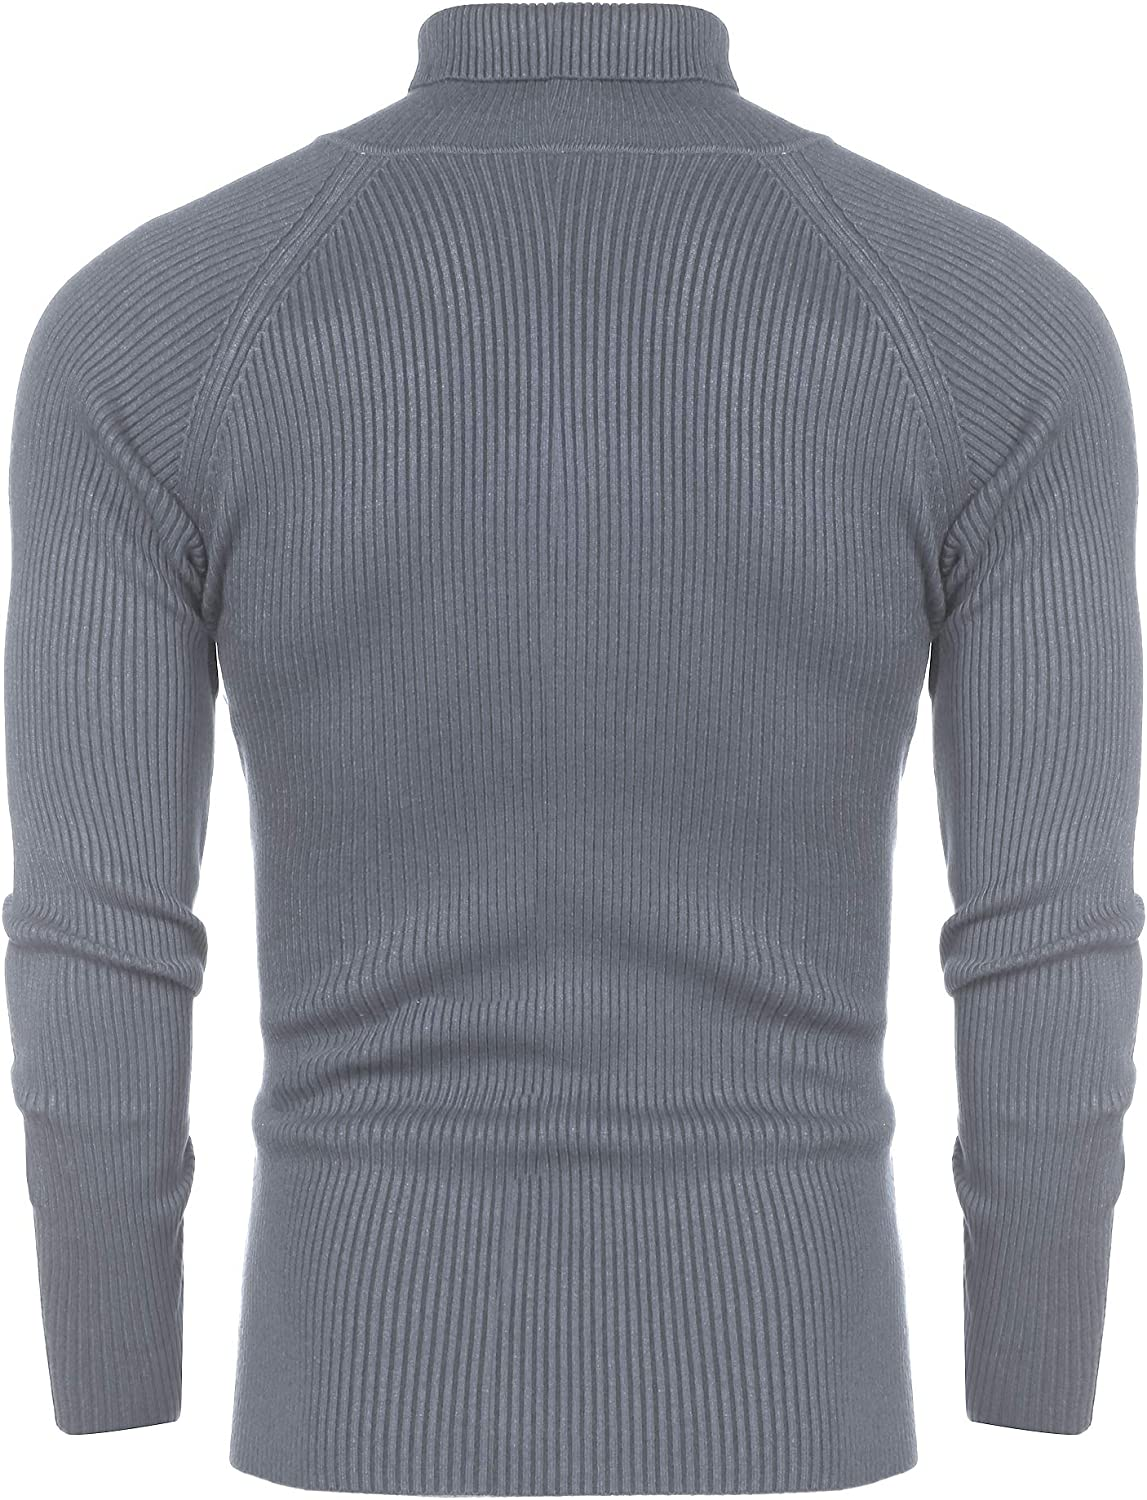 Mens Tops T-shirt Long sleeve Turtleneck Casual Solid Stretch Comfy Lightweight